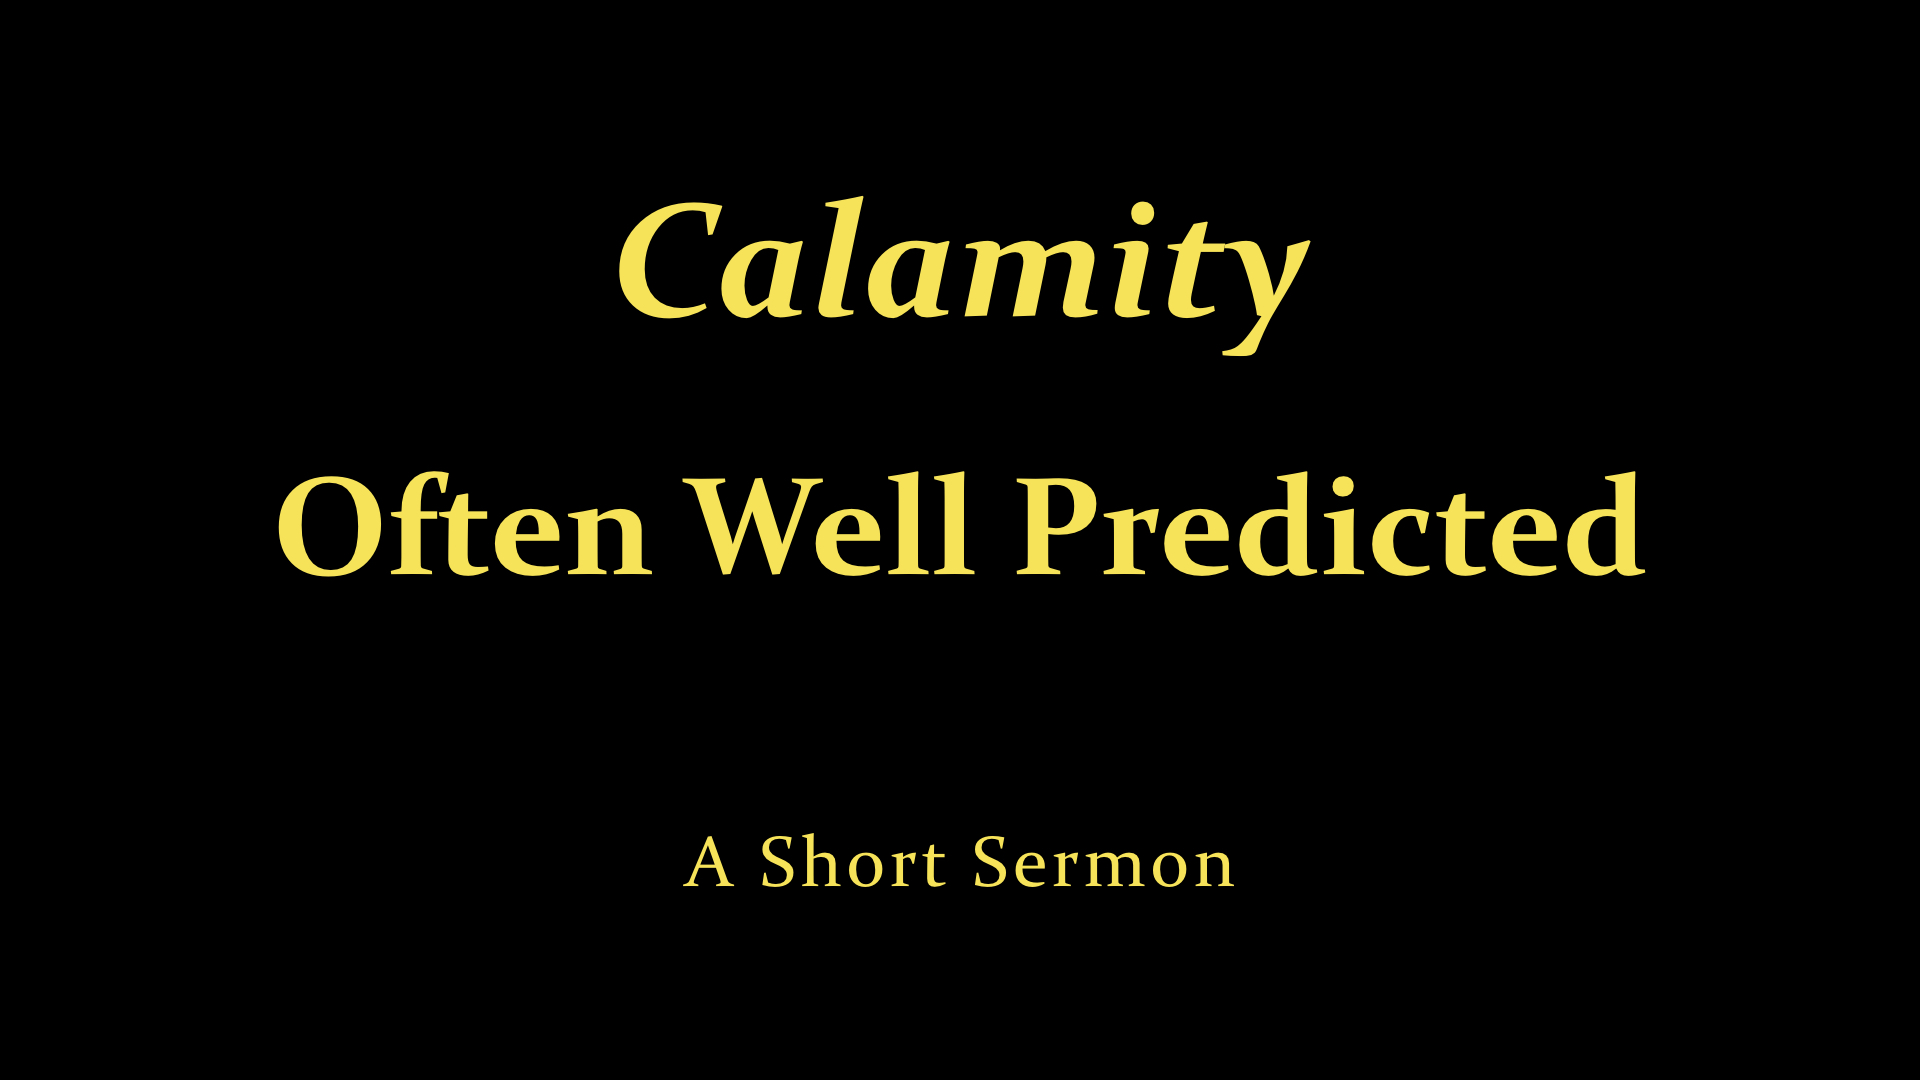 Calamity -- Often Well Predicted - A Short Sermon.jpeg